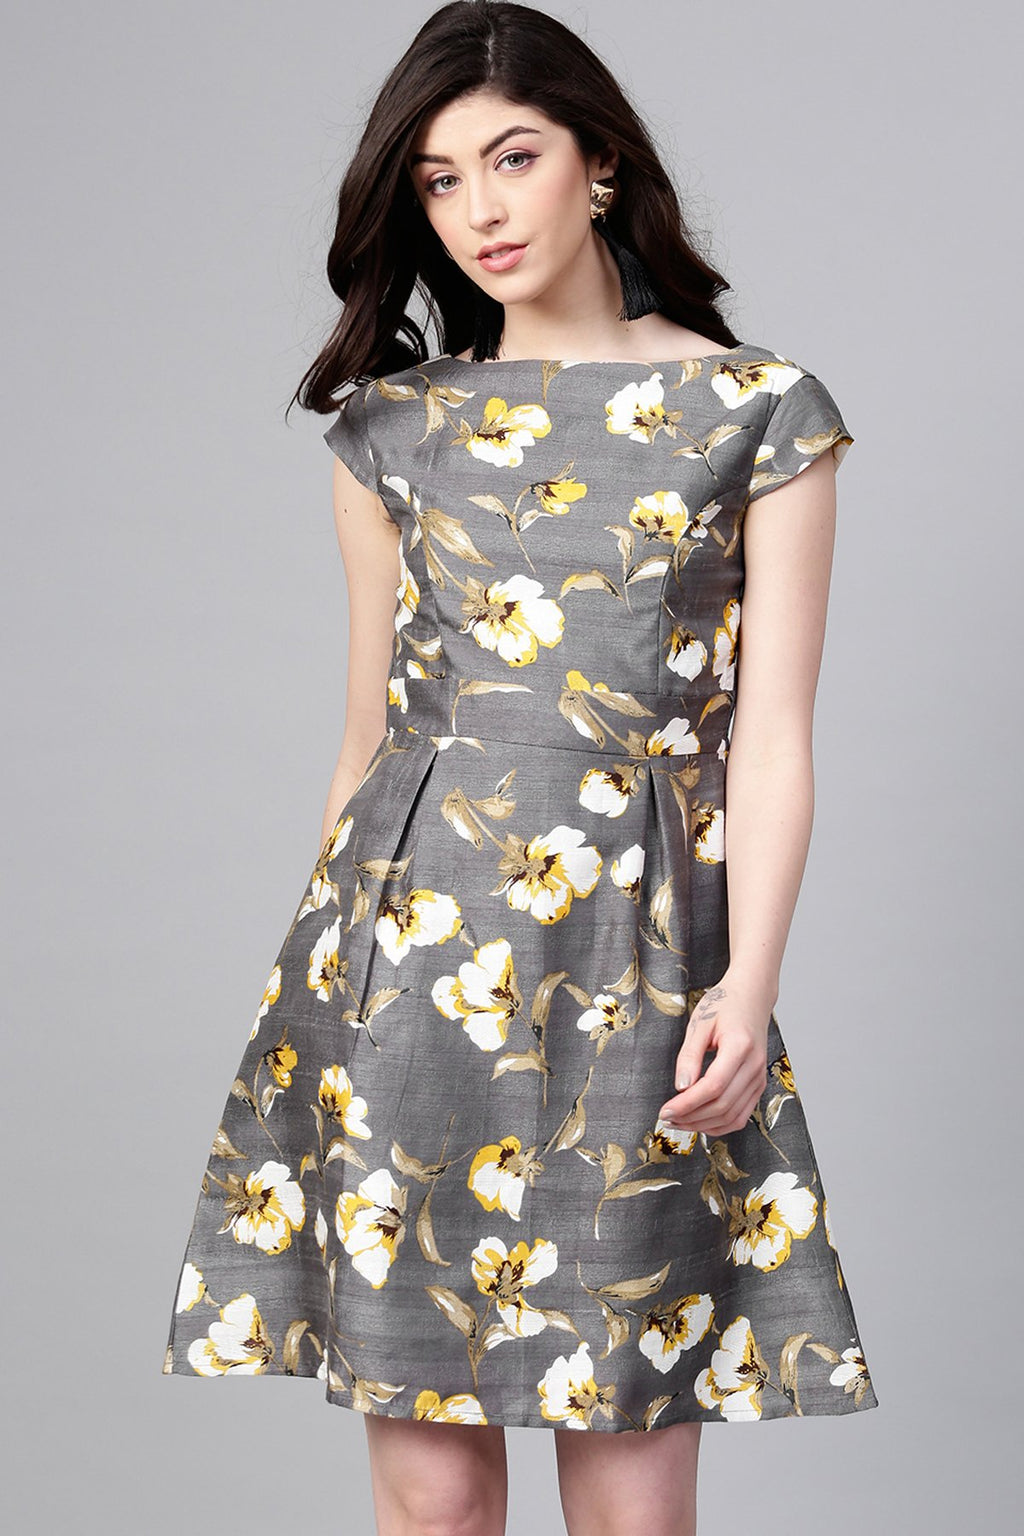 AUDREY DRESS - chique boutique